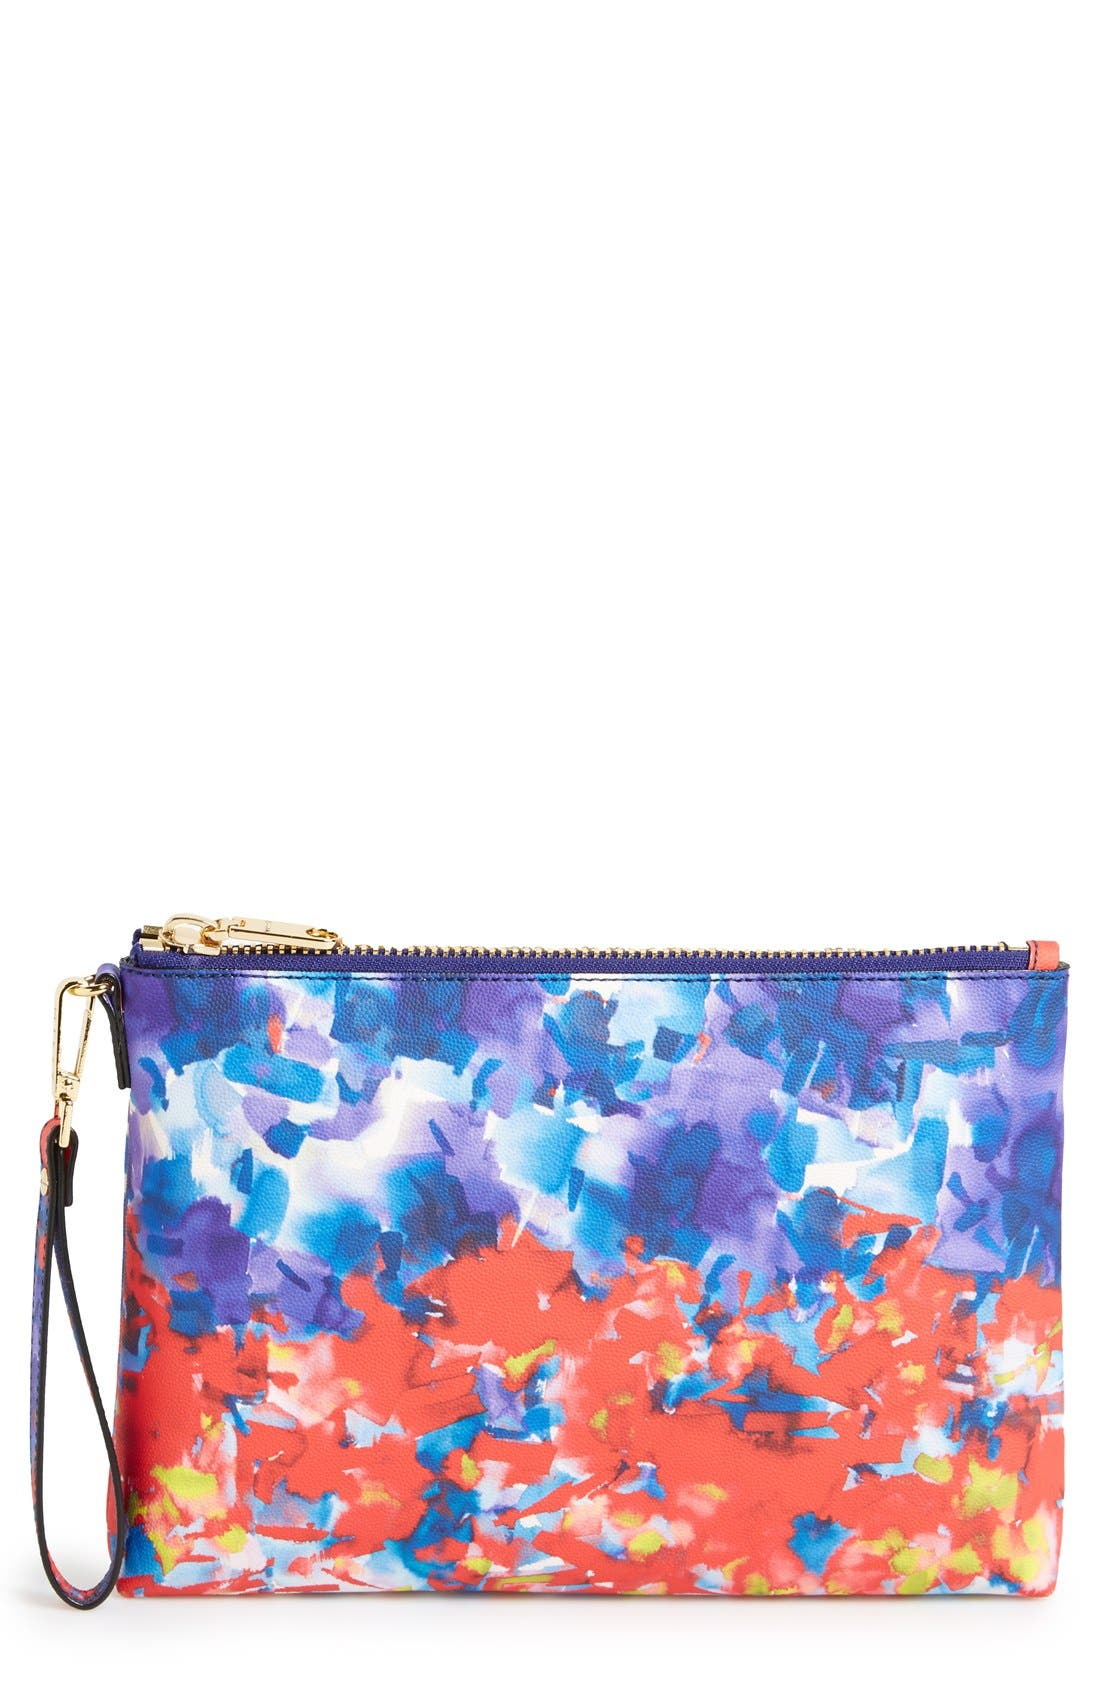 Alternate Image 1 Selected - Milly 'Watercolor' Faux Leather Wristlet Clutch